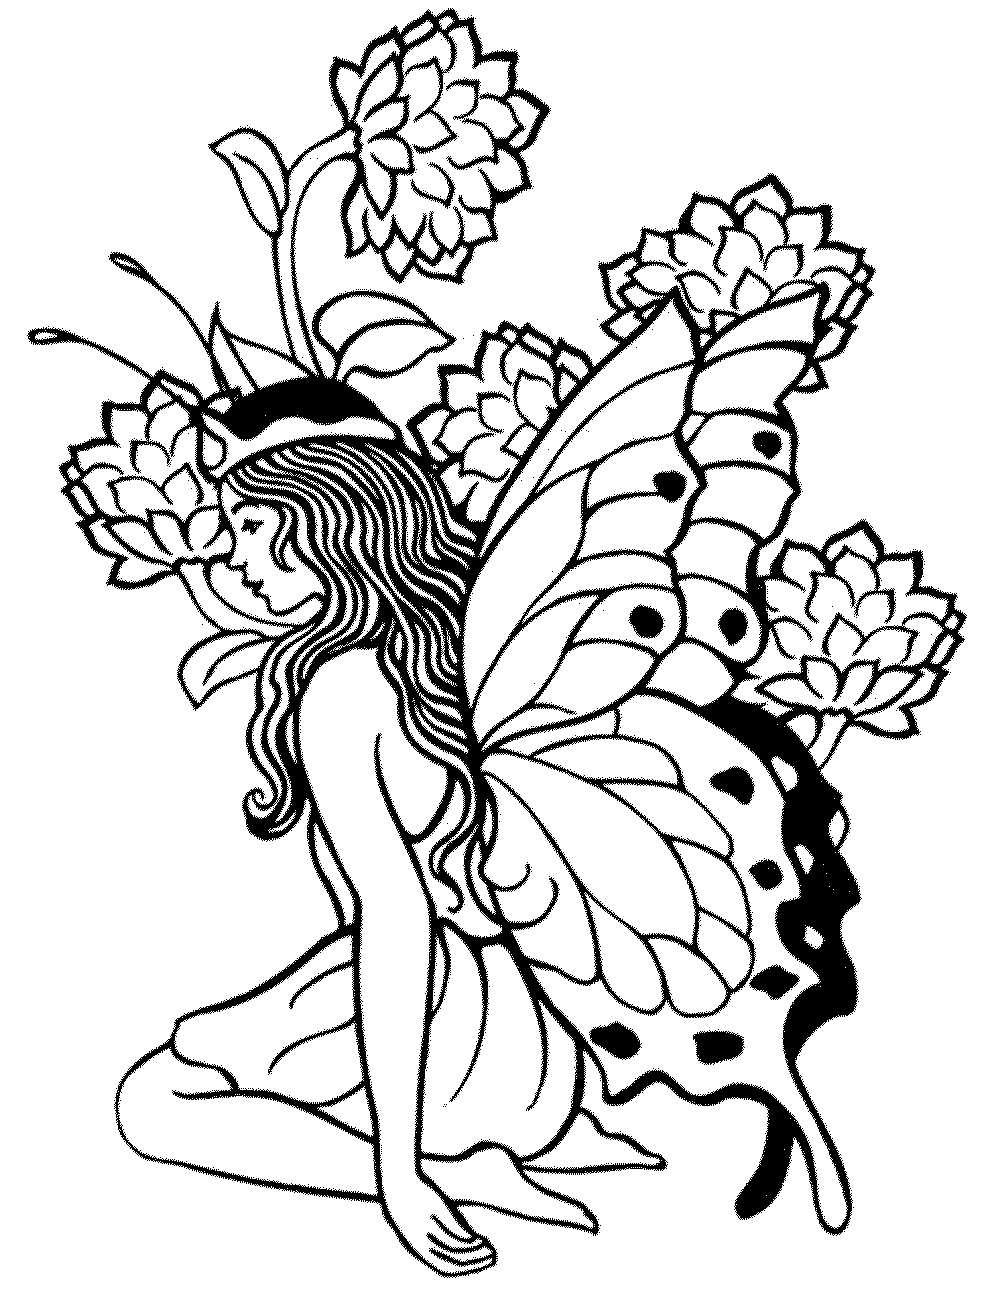 coloring pages for adults printable free - Fantasy Coloring Pages Adults